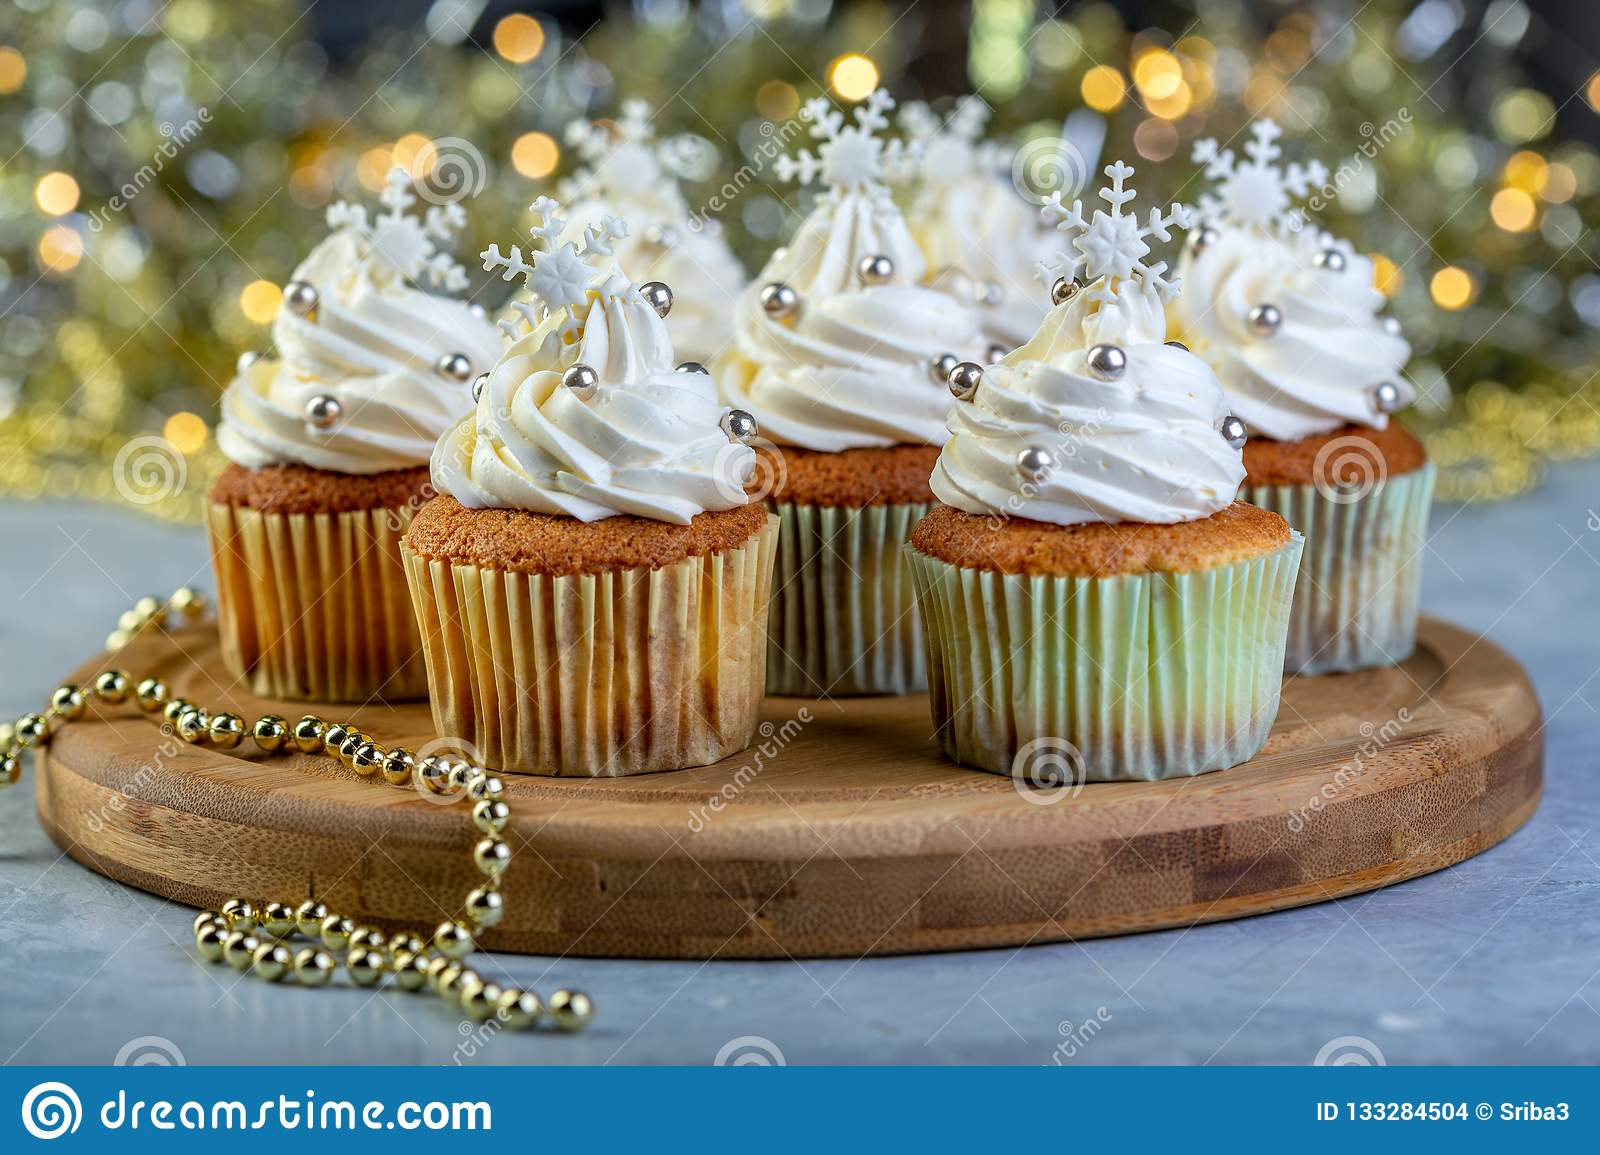 Cupcakes With Cream And Christmas Decorations Stock Photo Image